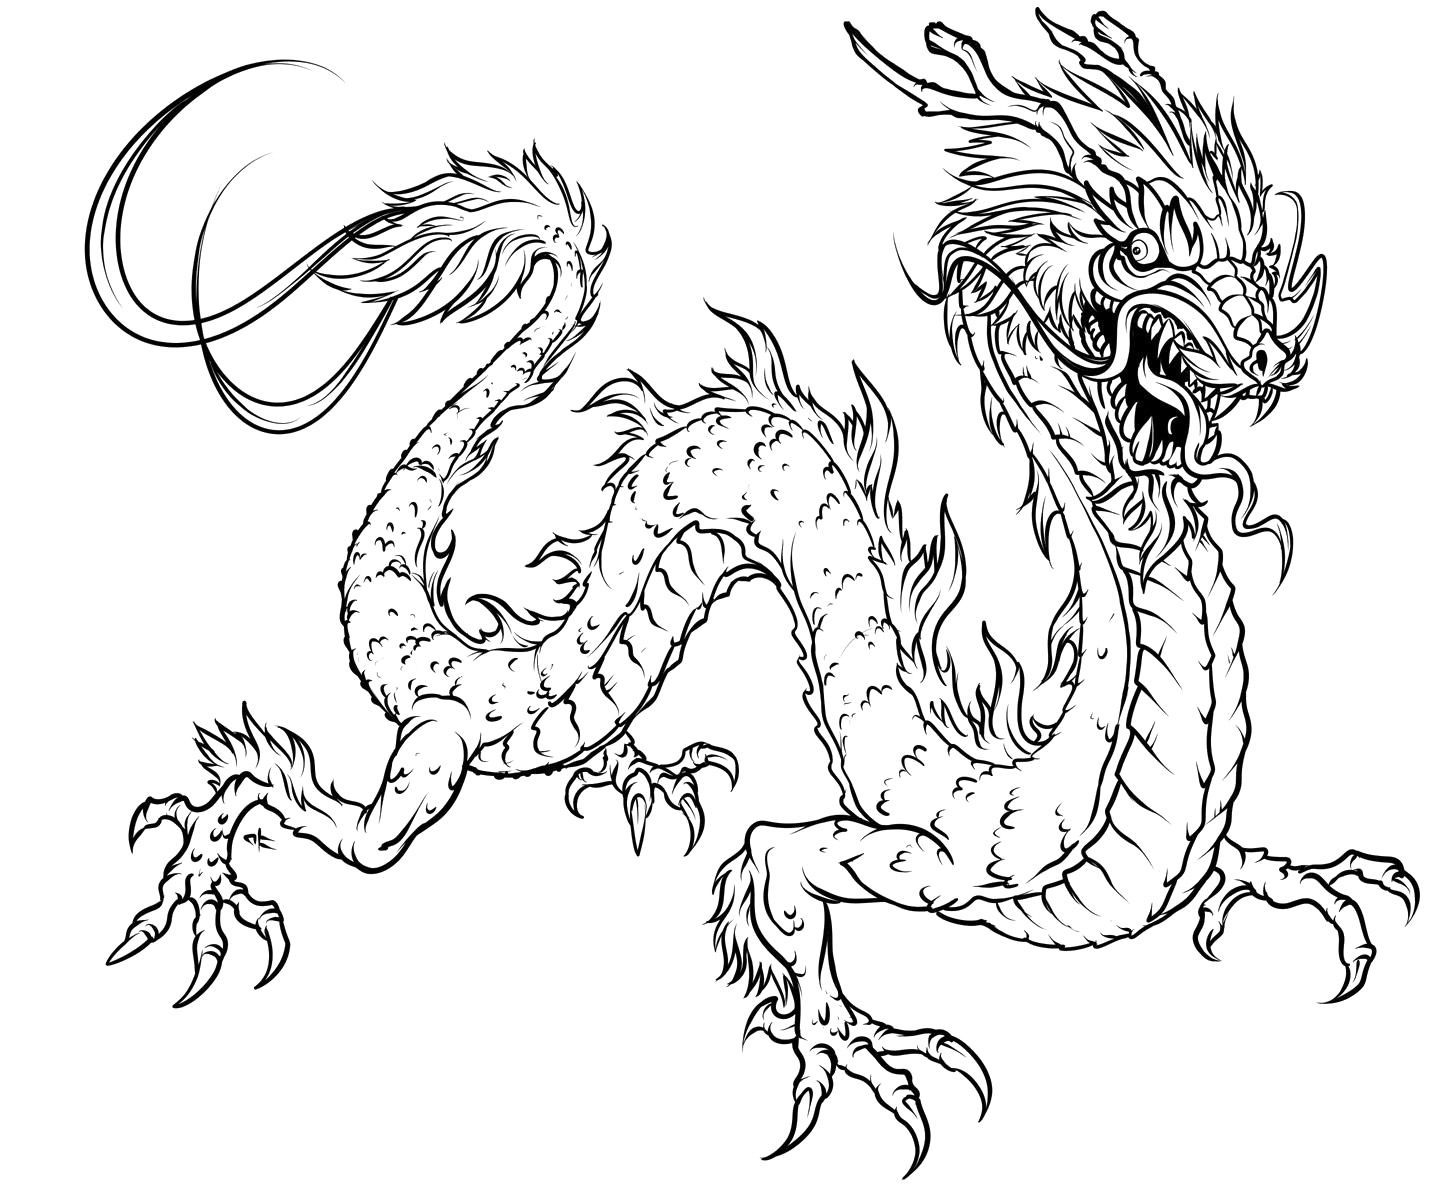 free coloring pages of dragons detailed dragon coloring pages coloring home pages coloring free dragons of